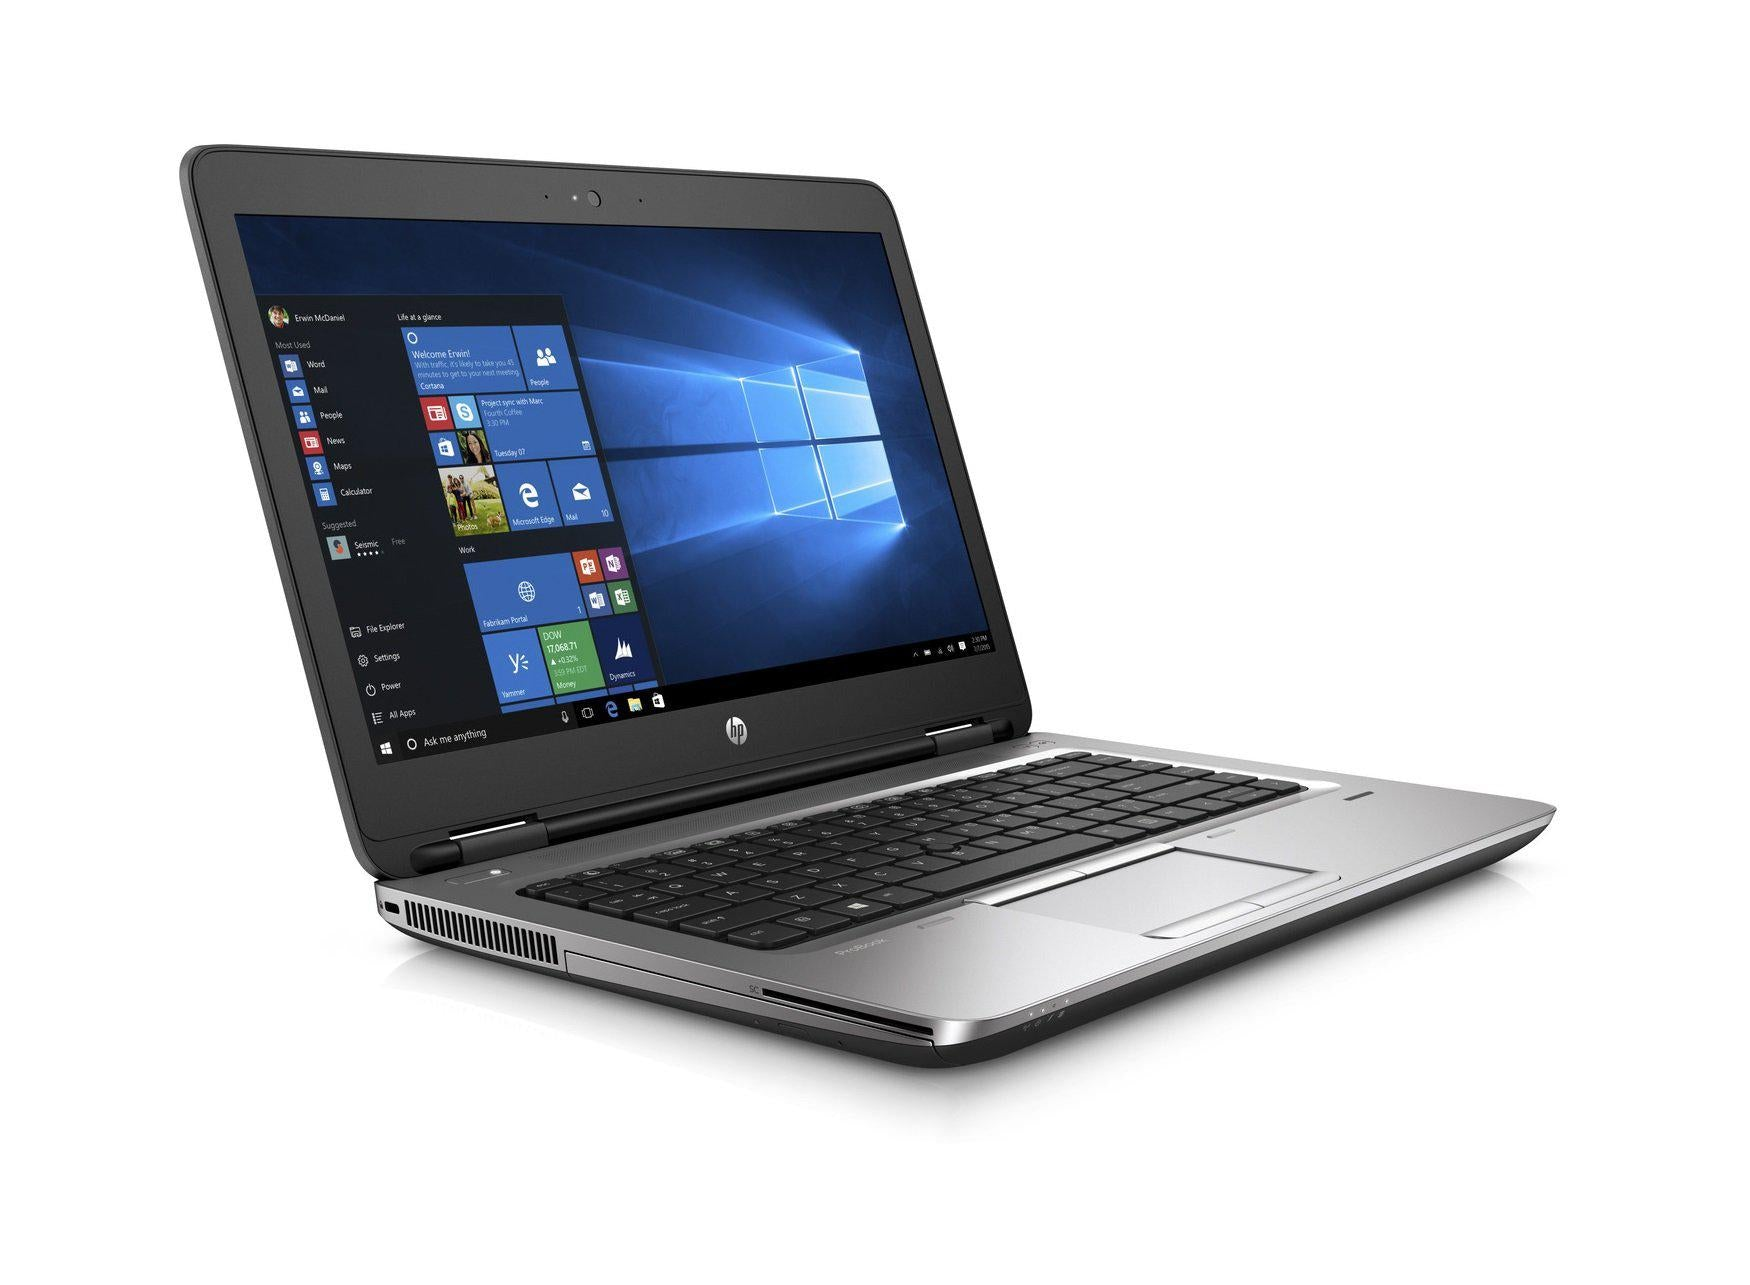 "HP Probook 640 G1 14"" Certified Refurbished Laptop Core i5 2.6Ghz 5 Year Warranty Windows 10"